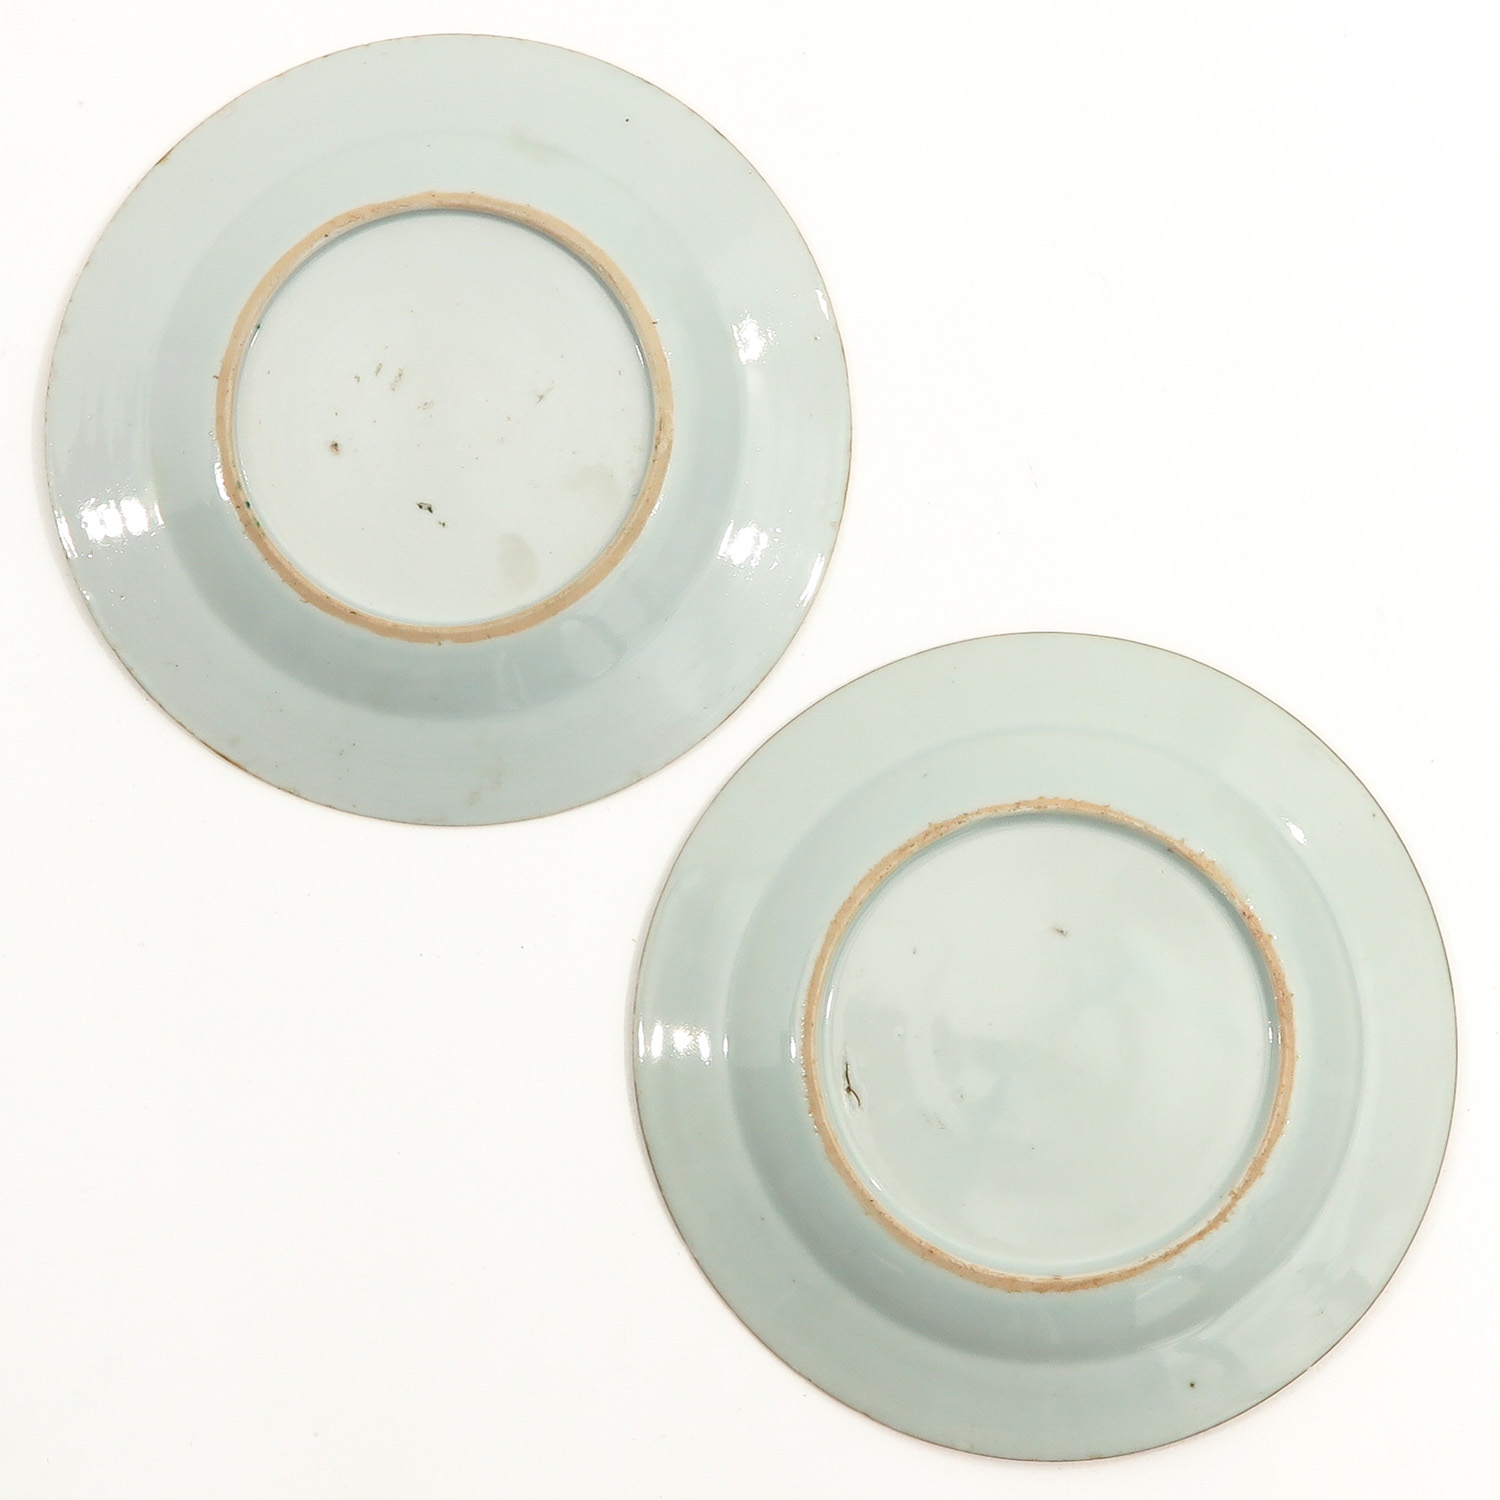 A Series of 4 Famille Rose Plates - Image 6 of 10